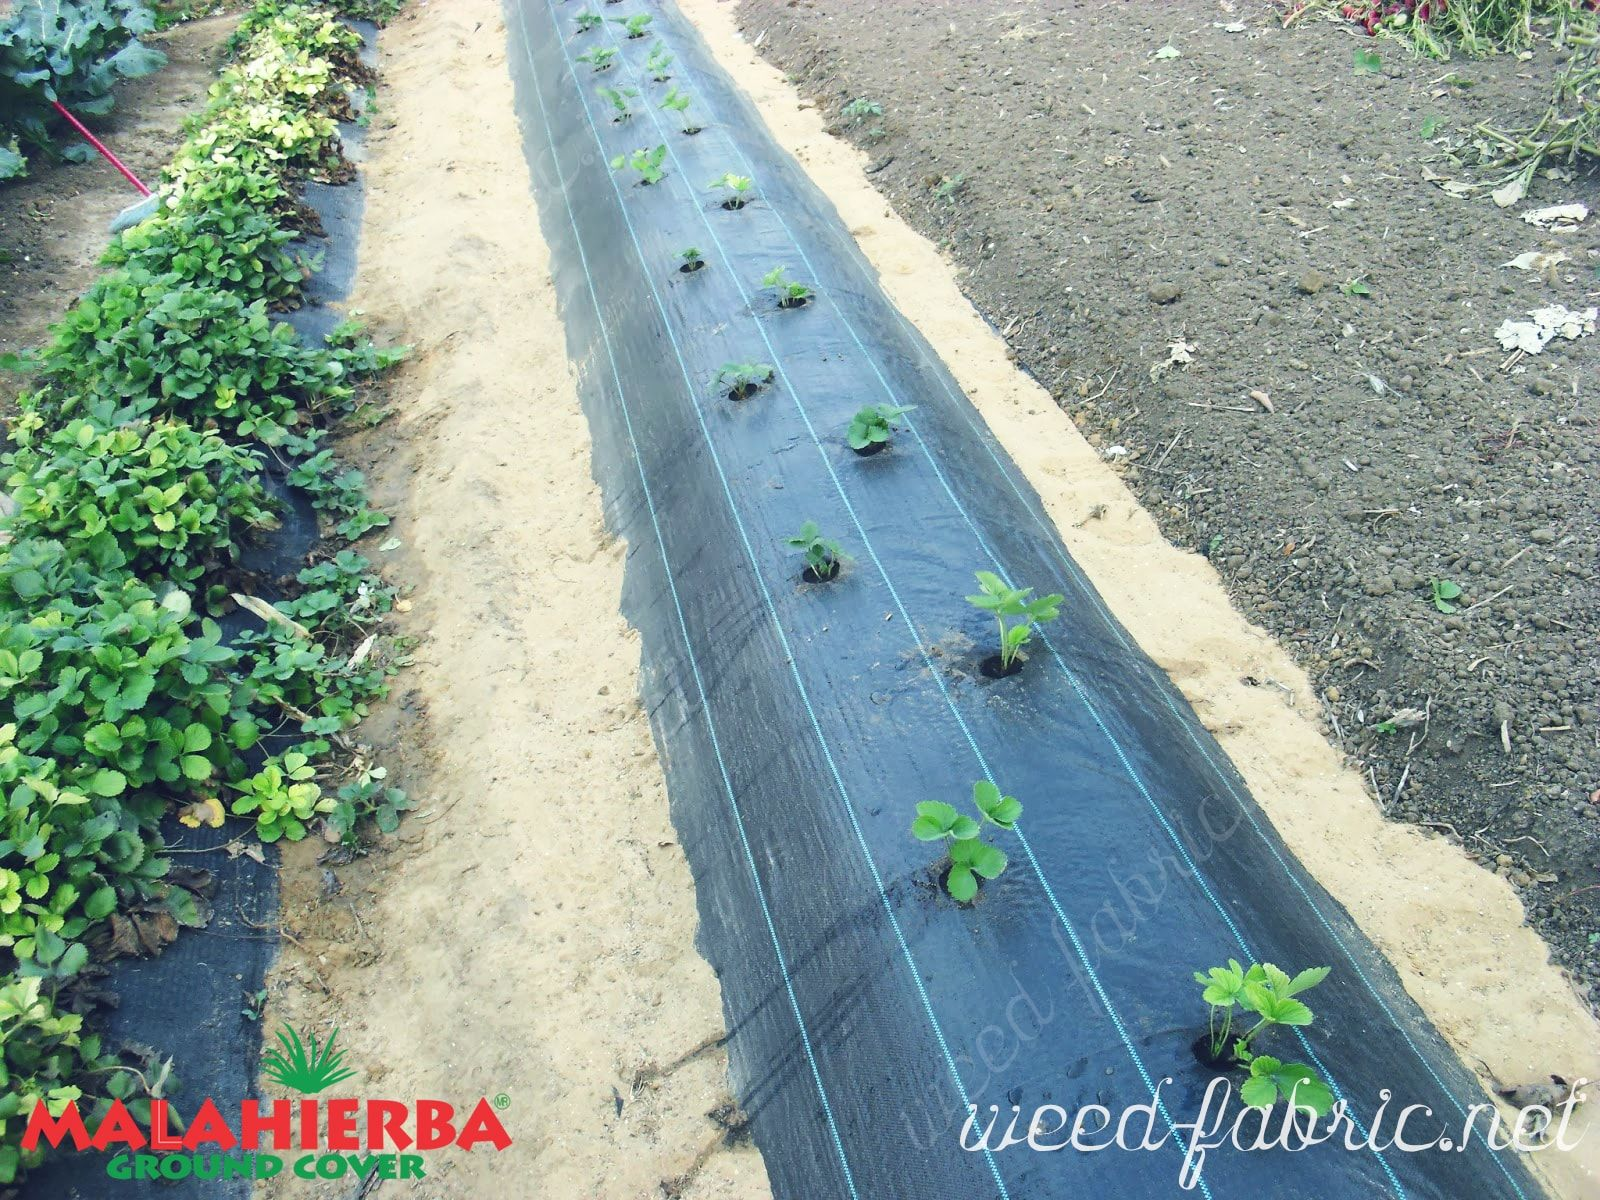 ground cover installed for protect crop.